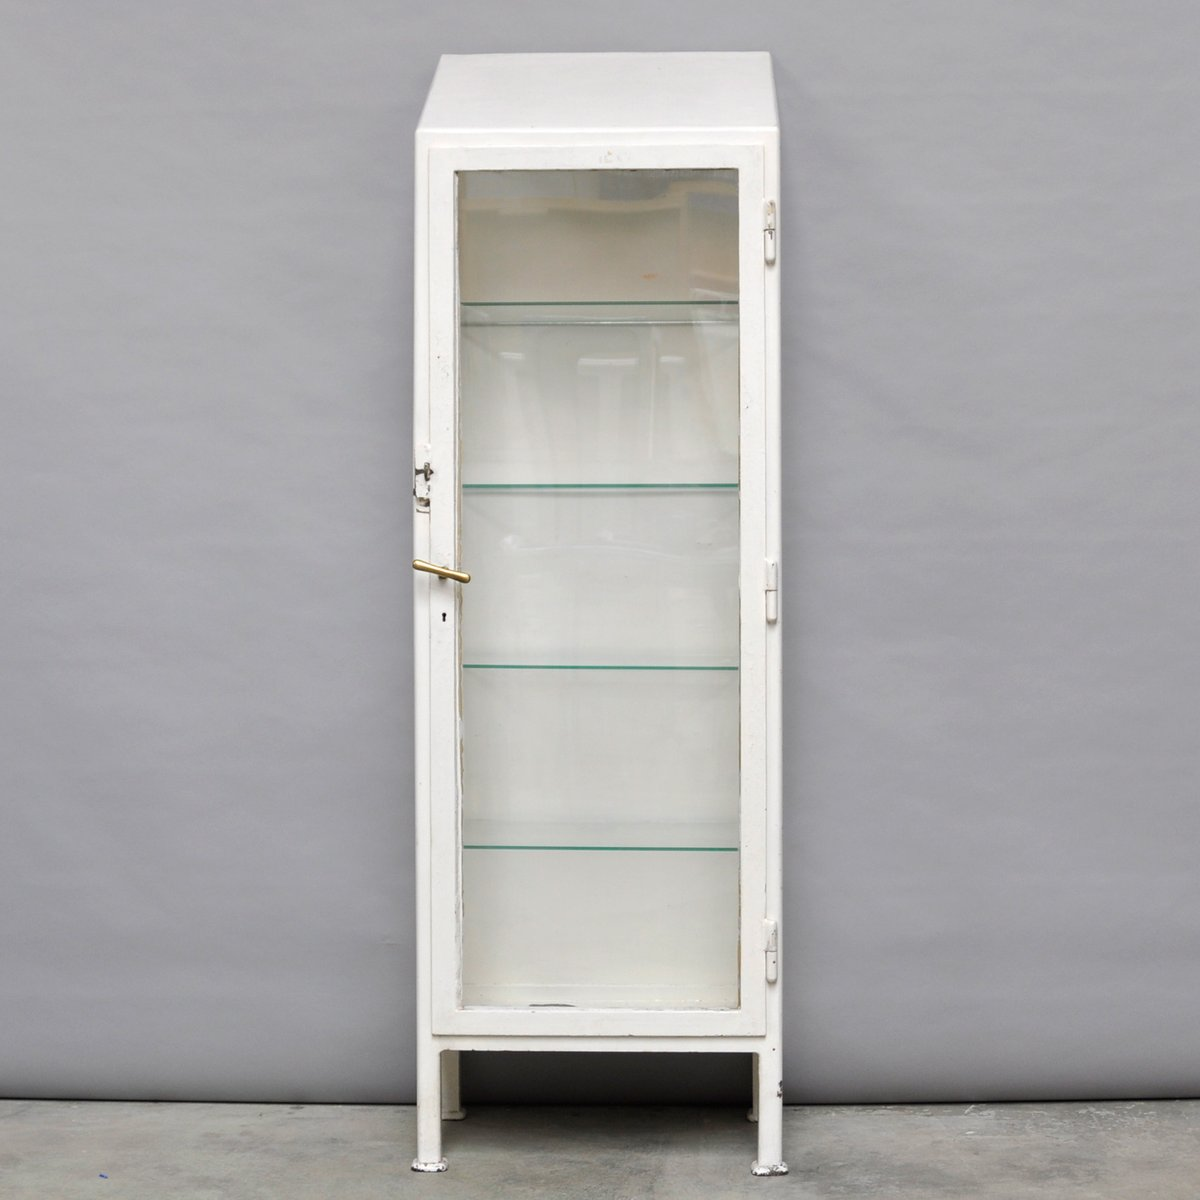 Attractive Angled Industrial Medical Cabinet, 1930s